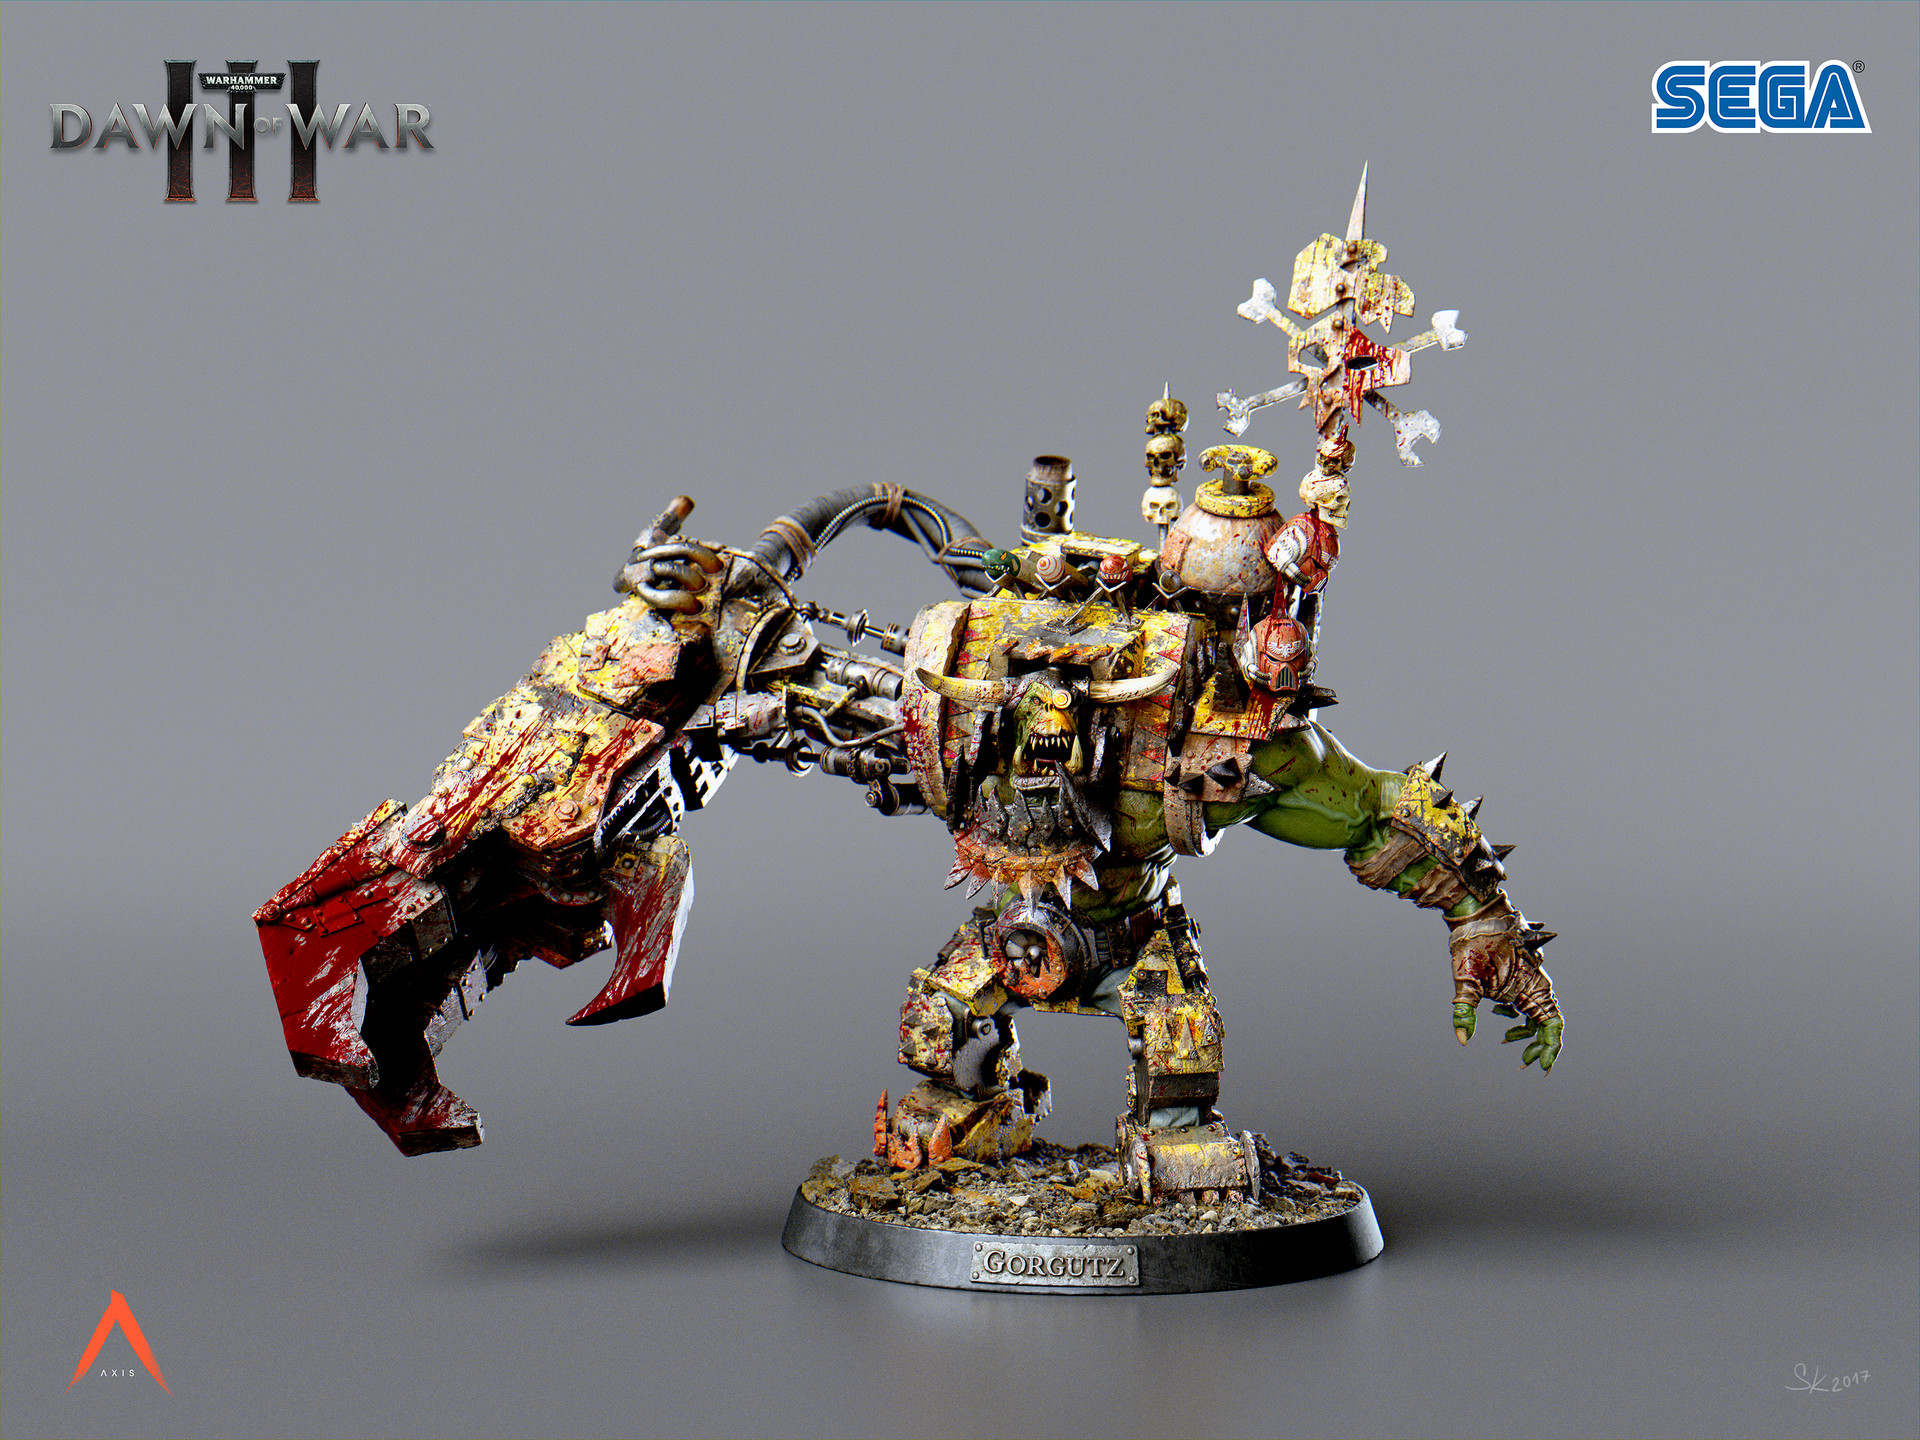 ork vs Space Marine warhammer 40k - Daz 3D Forums